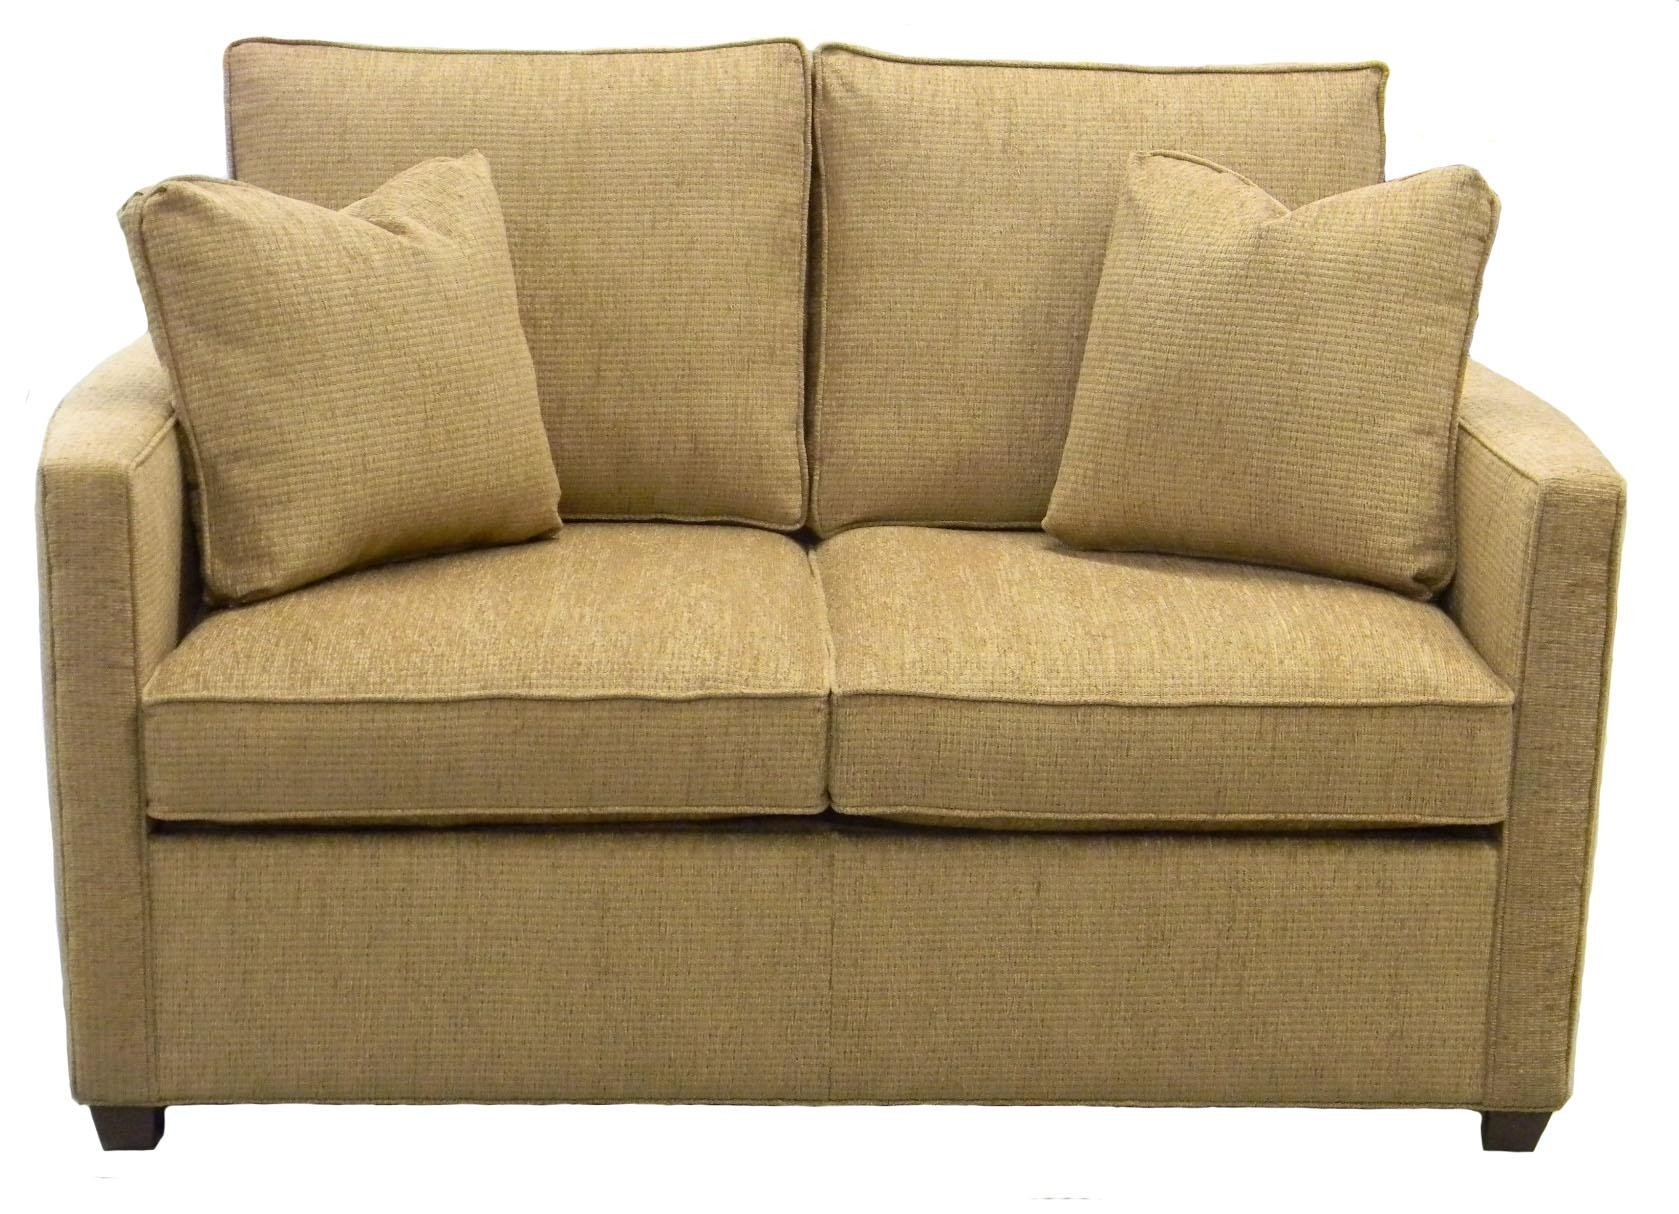 Jennings Twin Sleeper Sofa Carolina Chair Made Usa Nc Free Shipping In Twin Sleeper Sofa Chairs (Image 8 of 20)